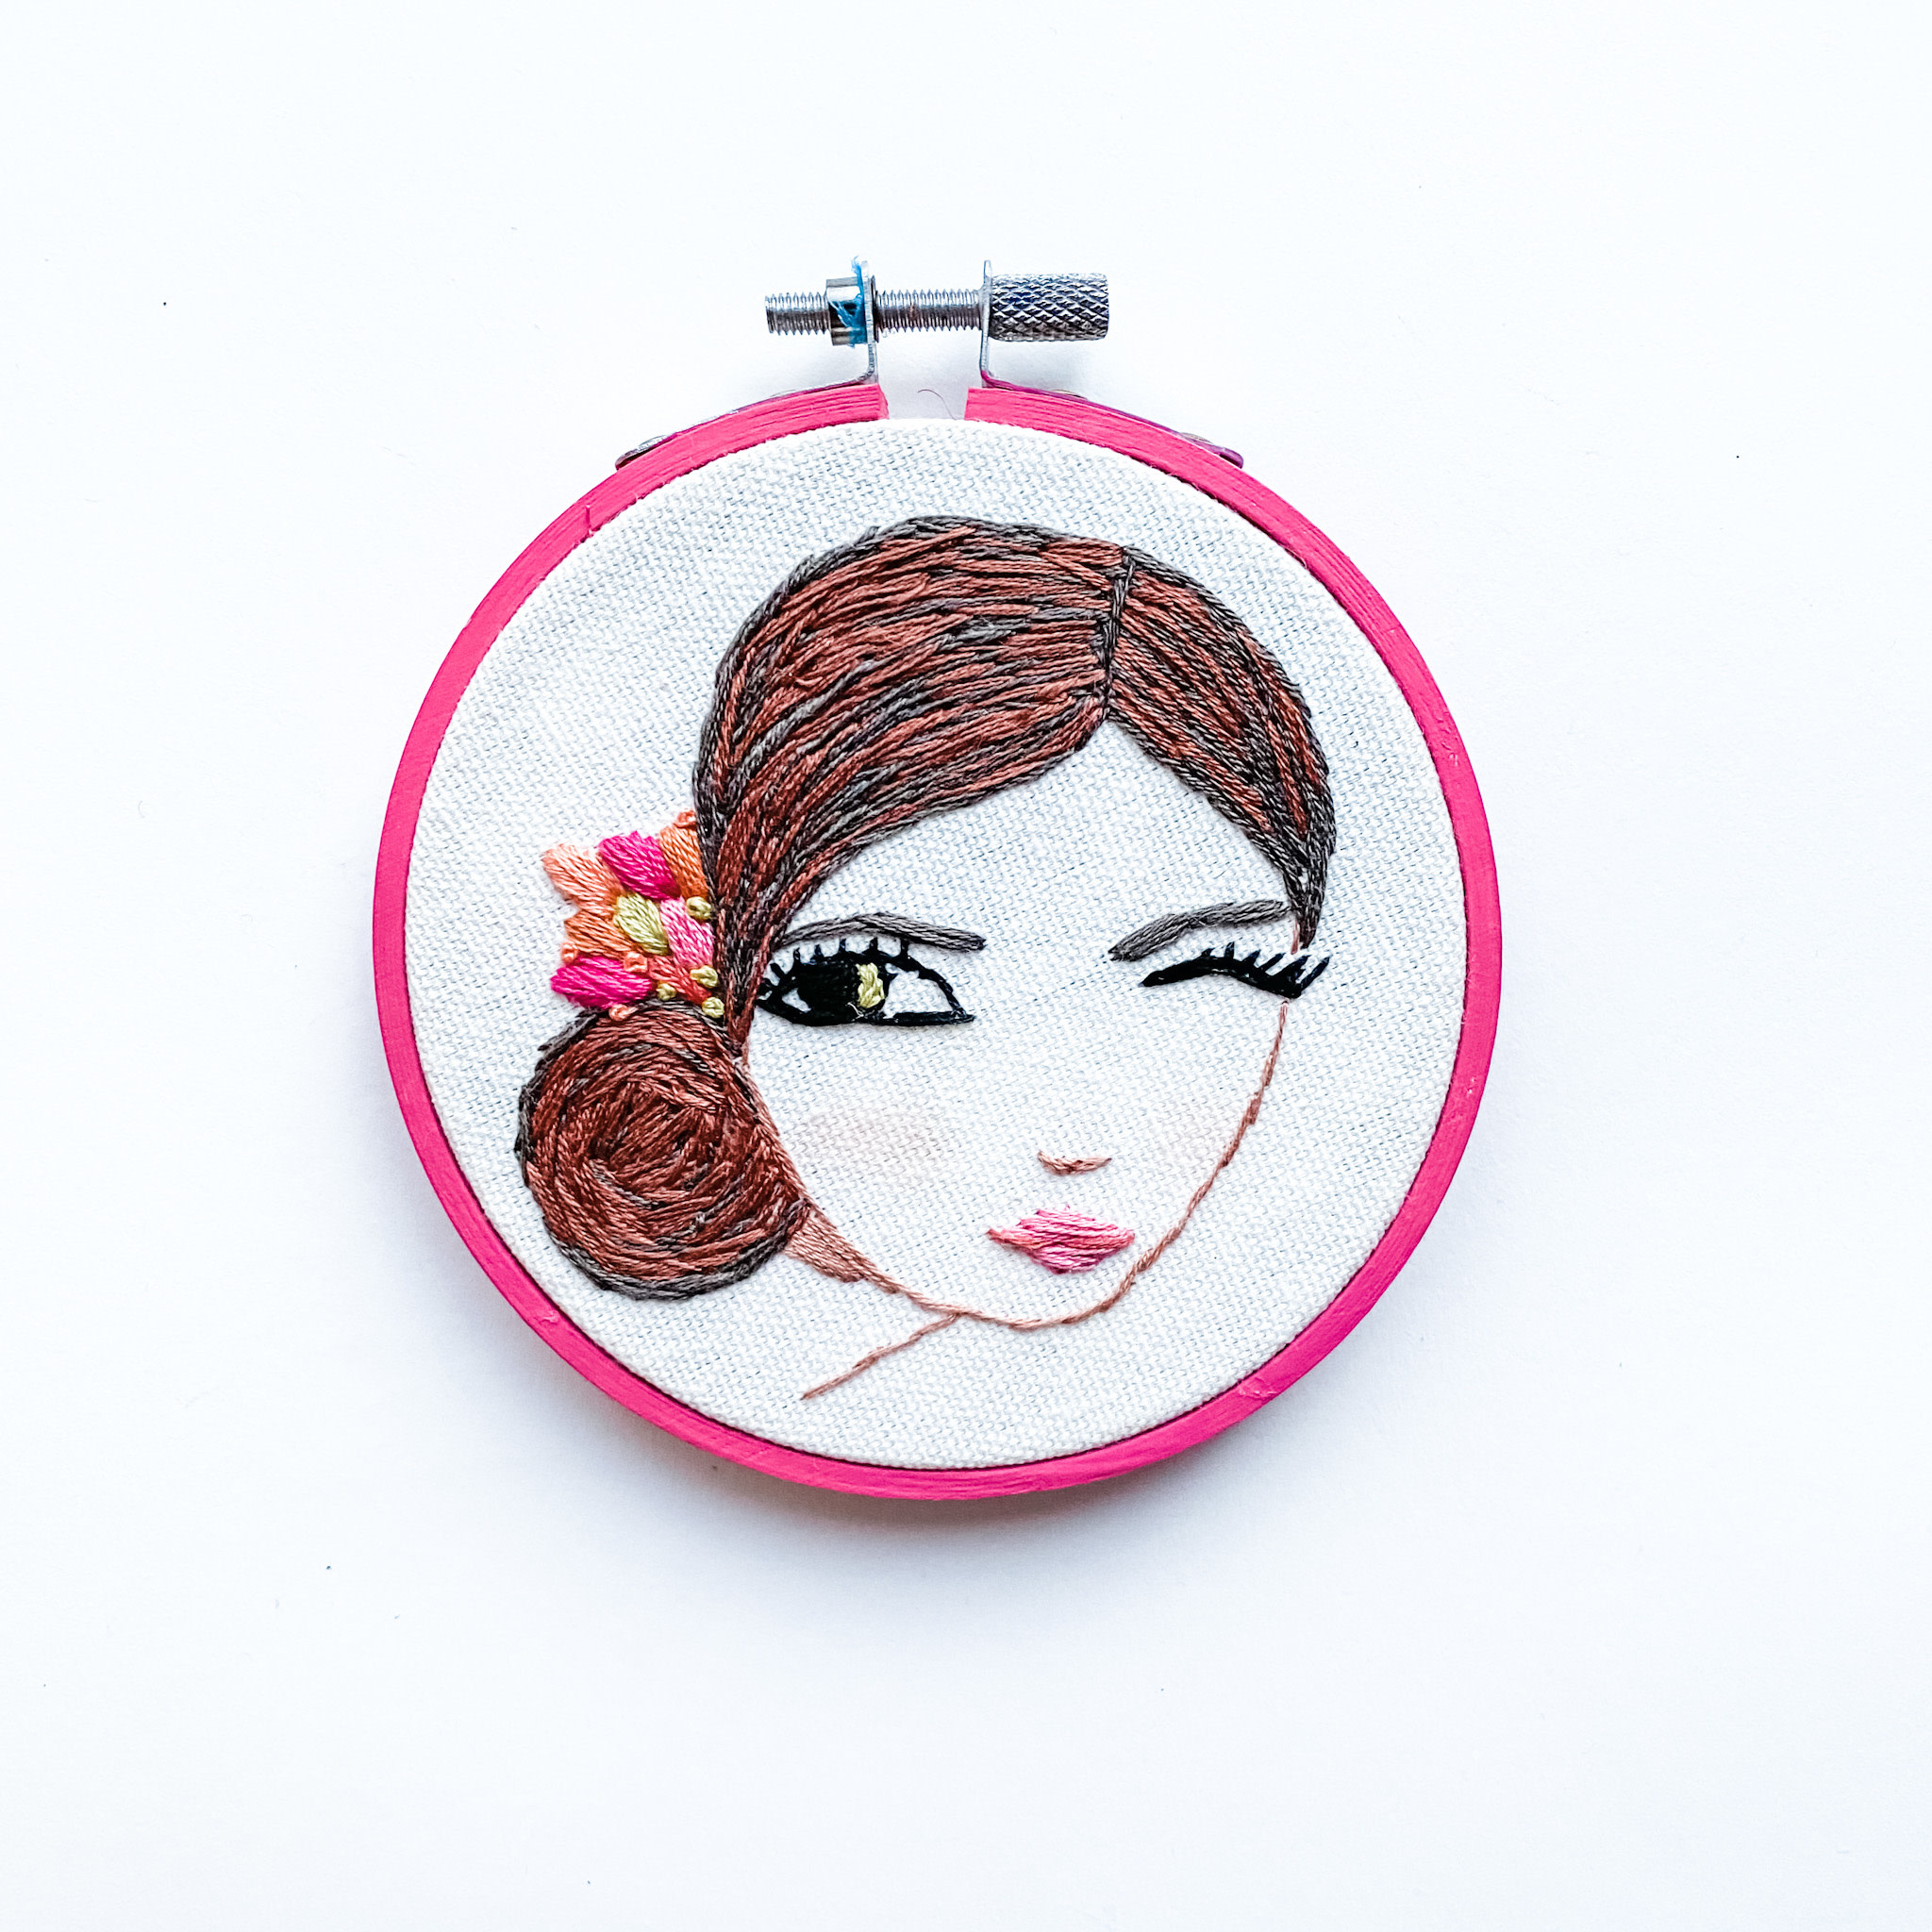 """Stitched On Langsford Embroidered Hoop 4"""" - Wink"""